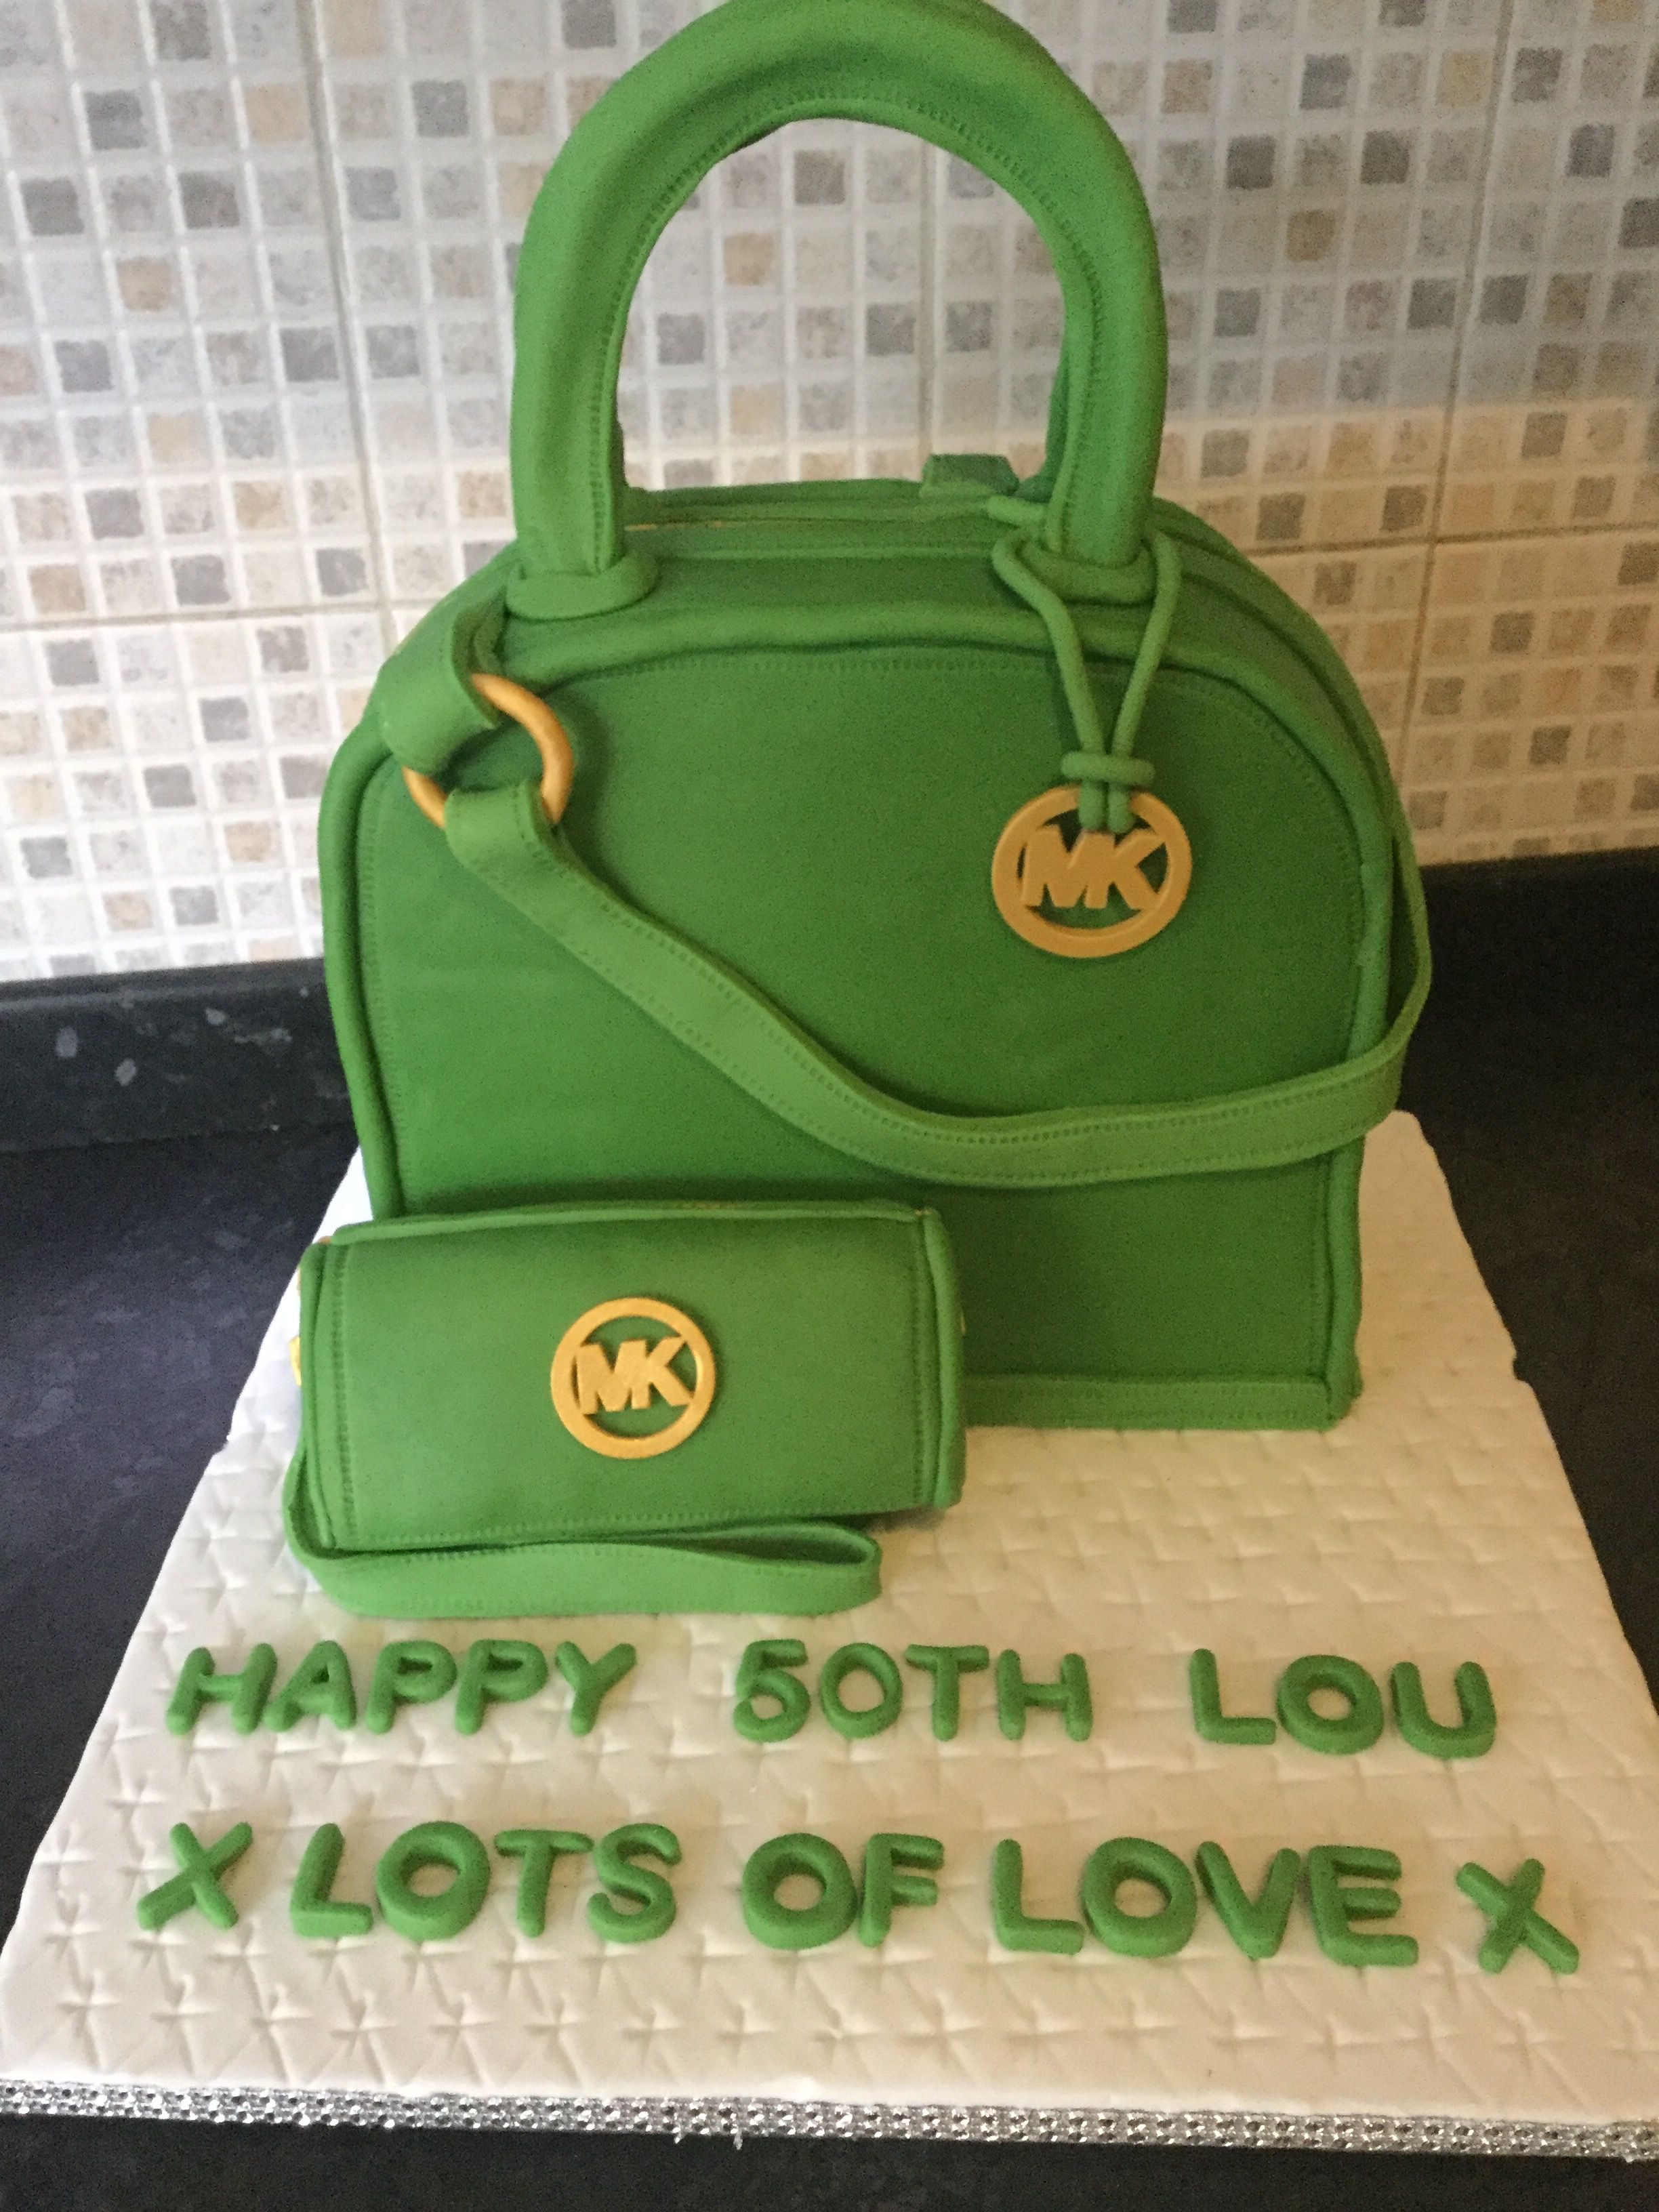 Lunch box image by debbie newman on cakes and sweet things